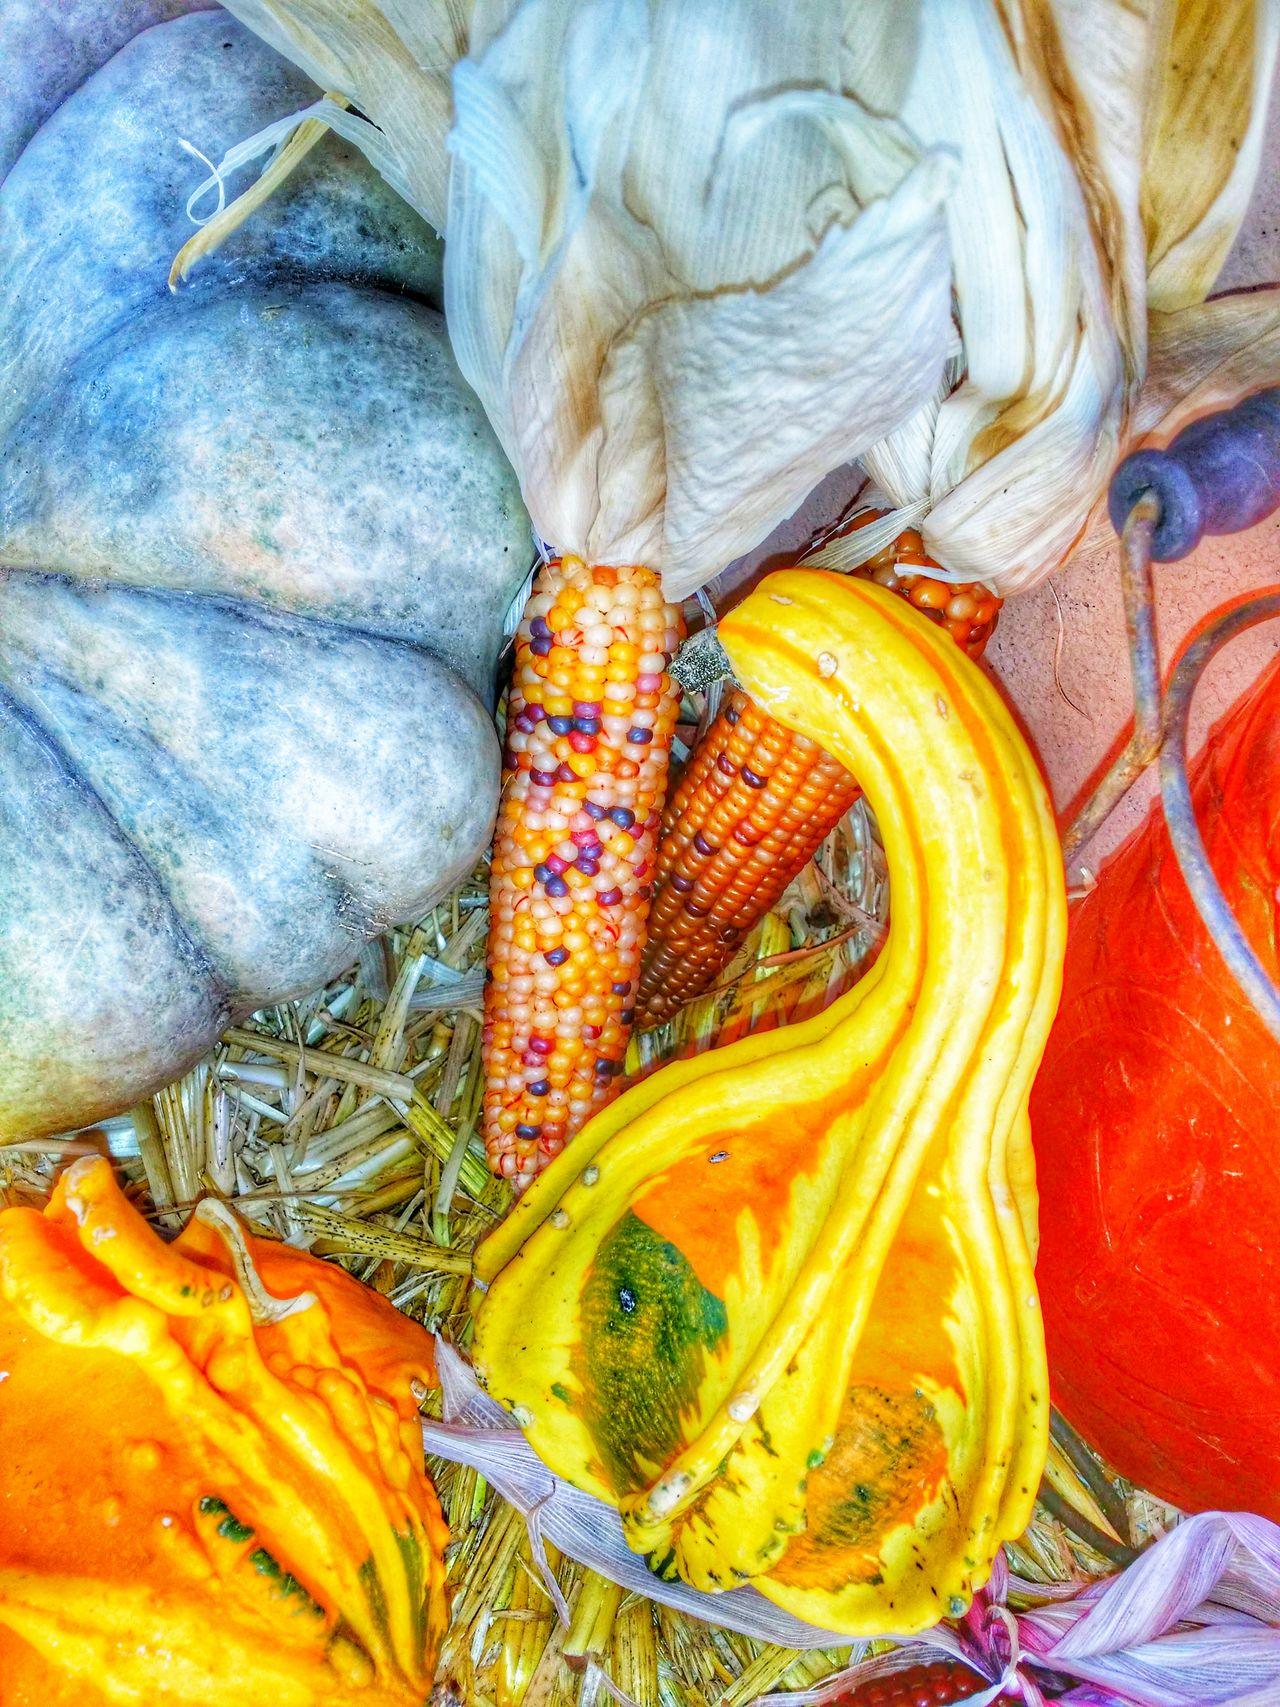 holiday setting of picked gourds on a hay bail Close-up No People Day Outdoors plants Plants Gourds Holiday Season Setting Hay Bail Holiday Setting Outdoor Photography